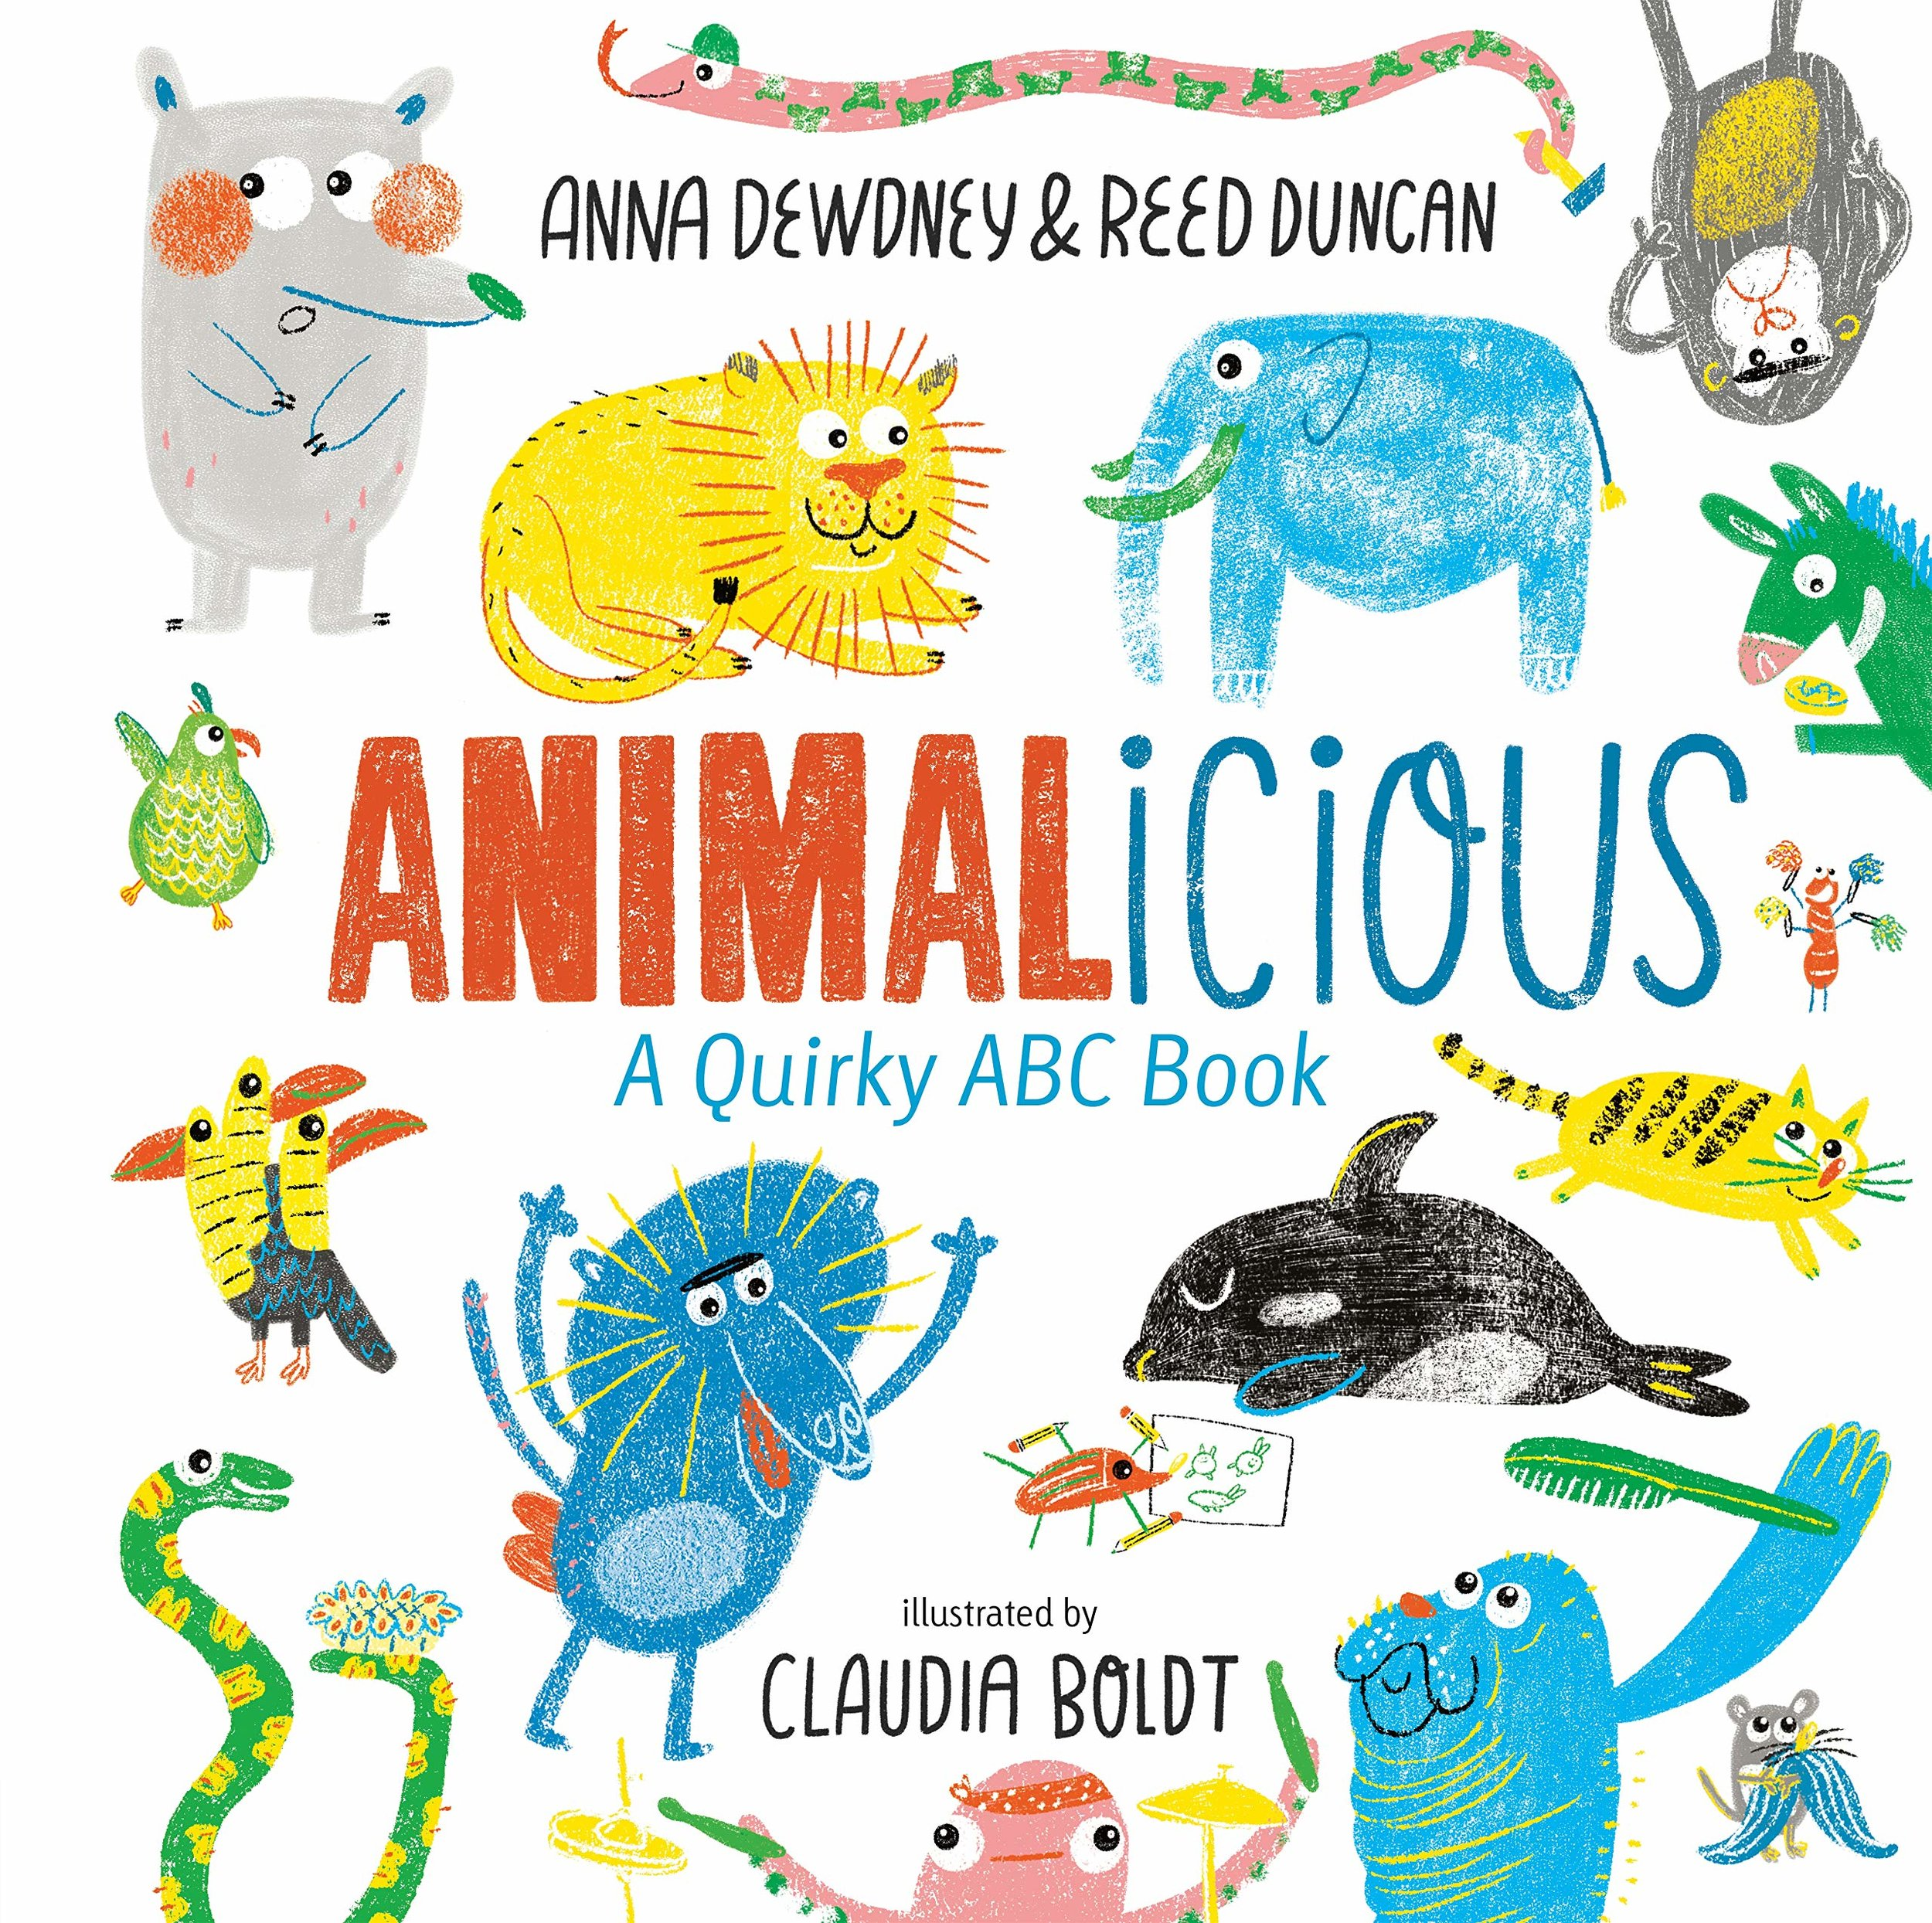 The Best ABC Picture Books - Animalicious.jpg